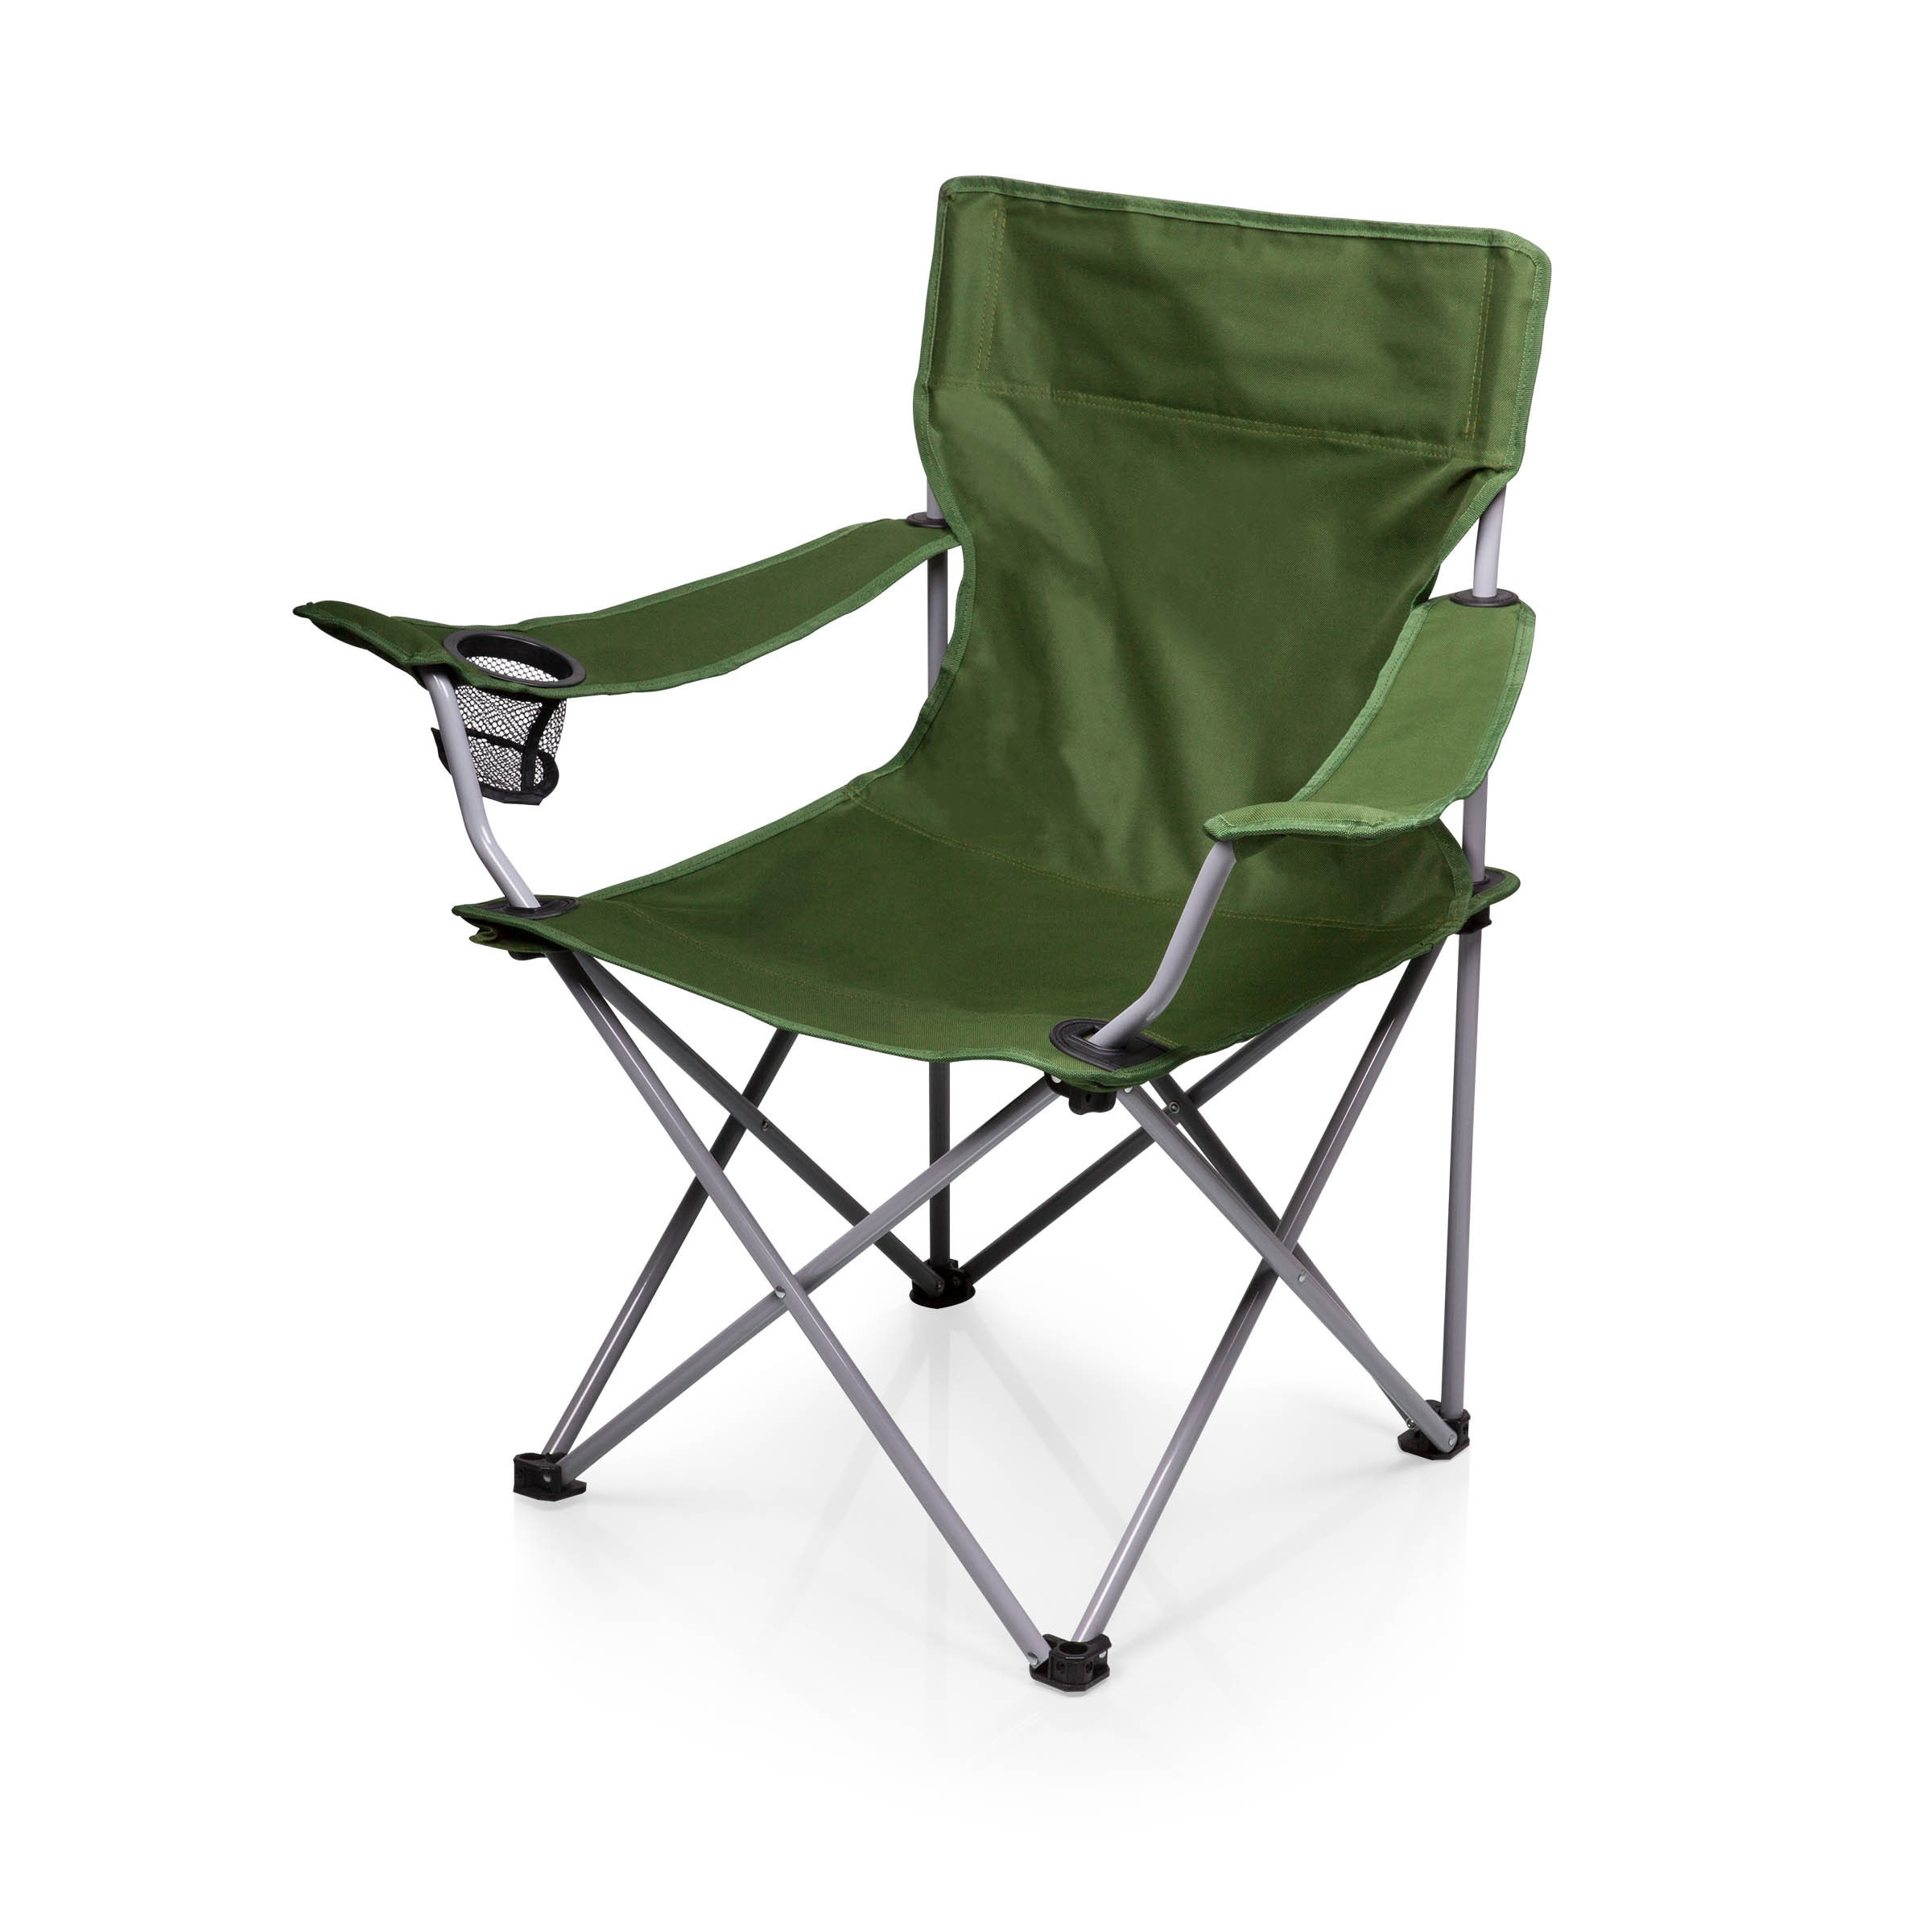 Sensational Camping Chairs Oniva Camping Hiking Gear Find Great Inzonedesignstudio Interior Chair Design Inzonedesignstudiocom